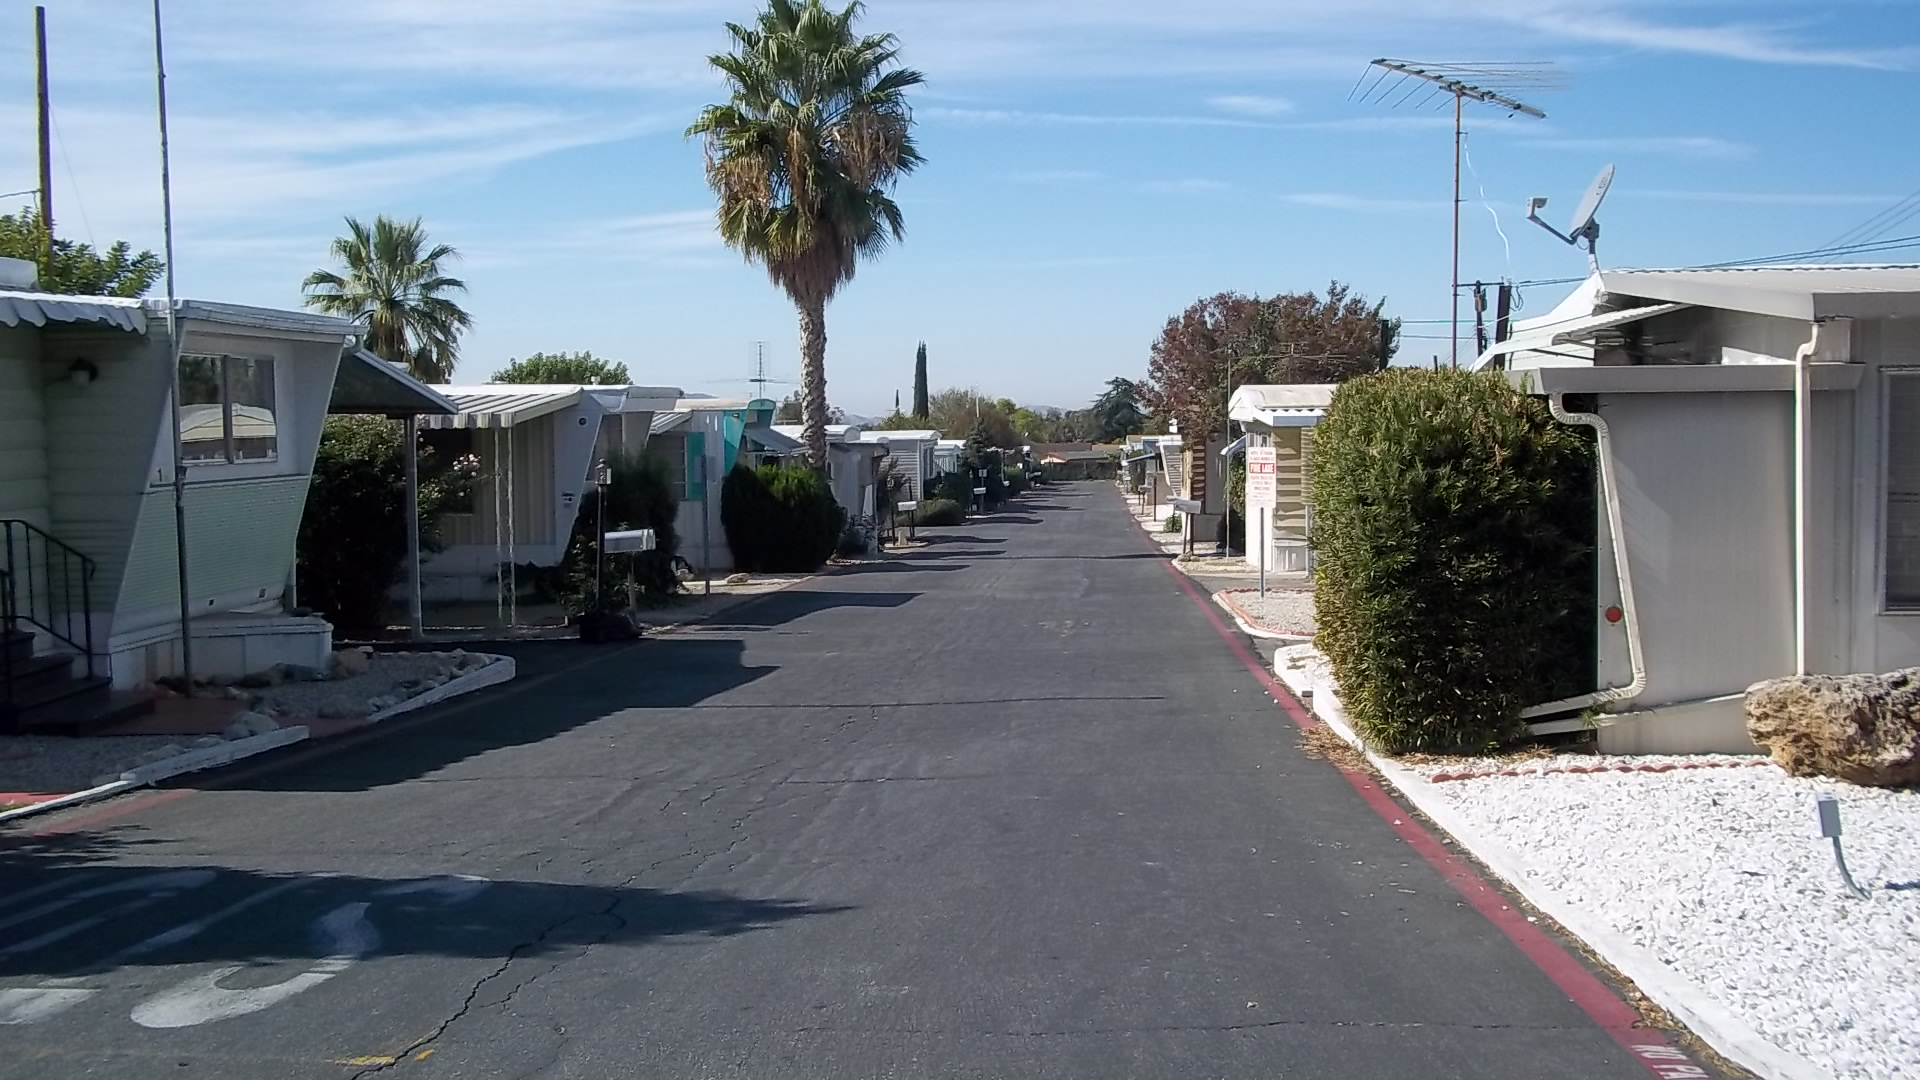 Los Angeles County Supervisors approve motion to establish rent control at mobile home parks